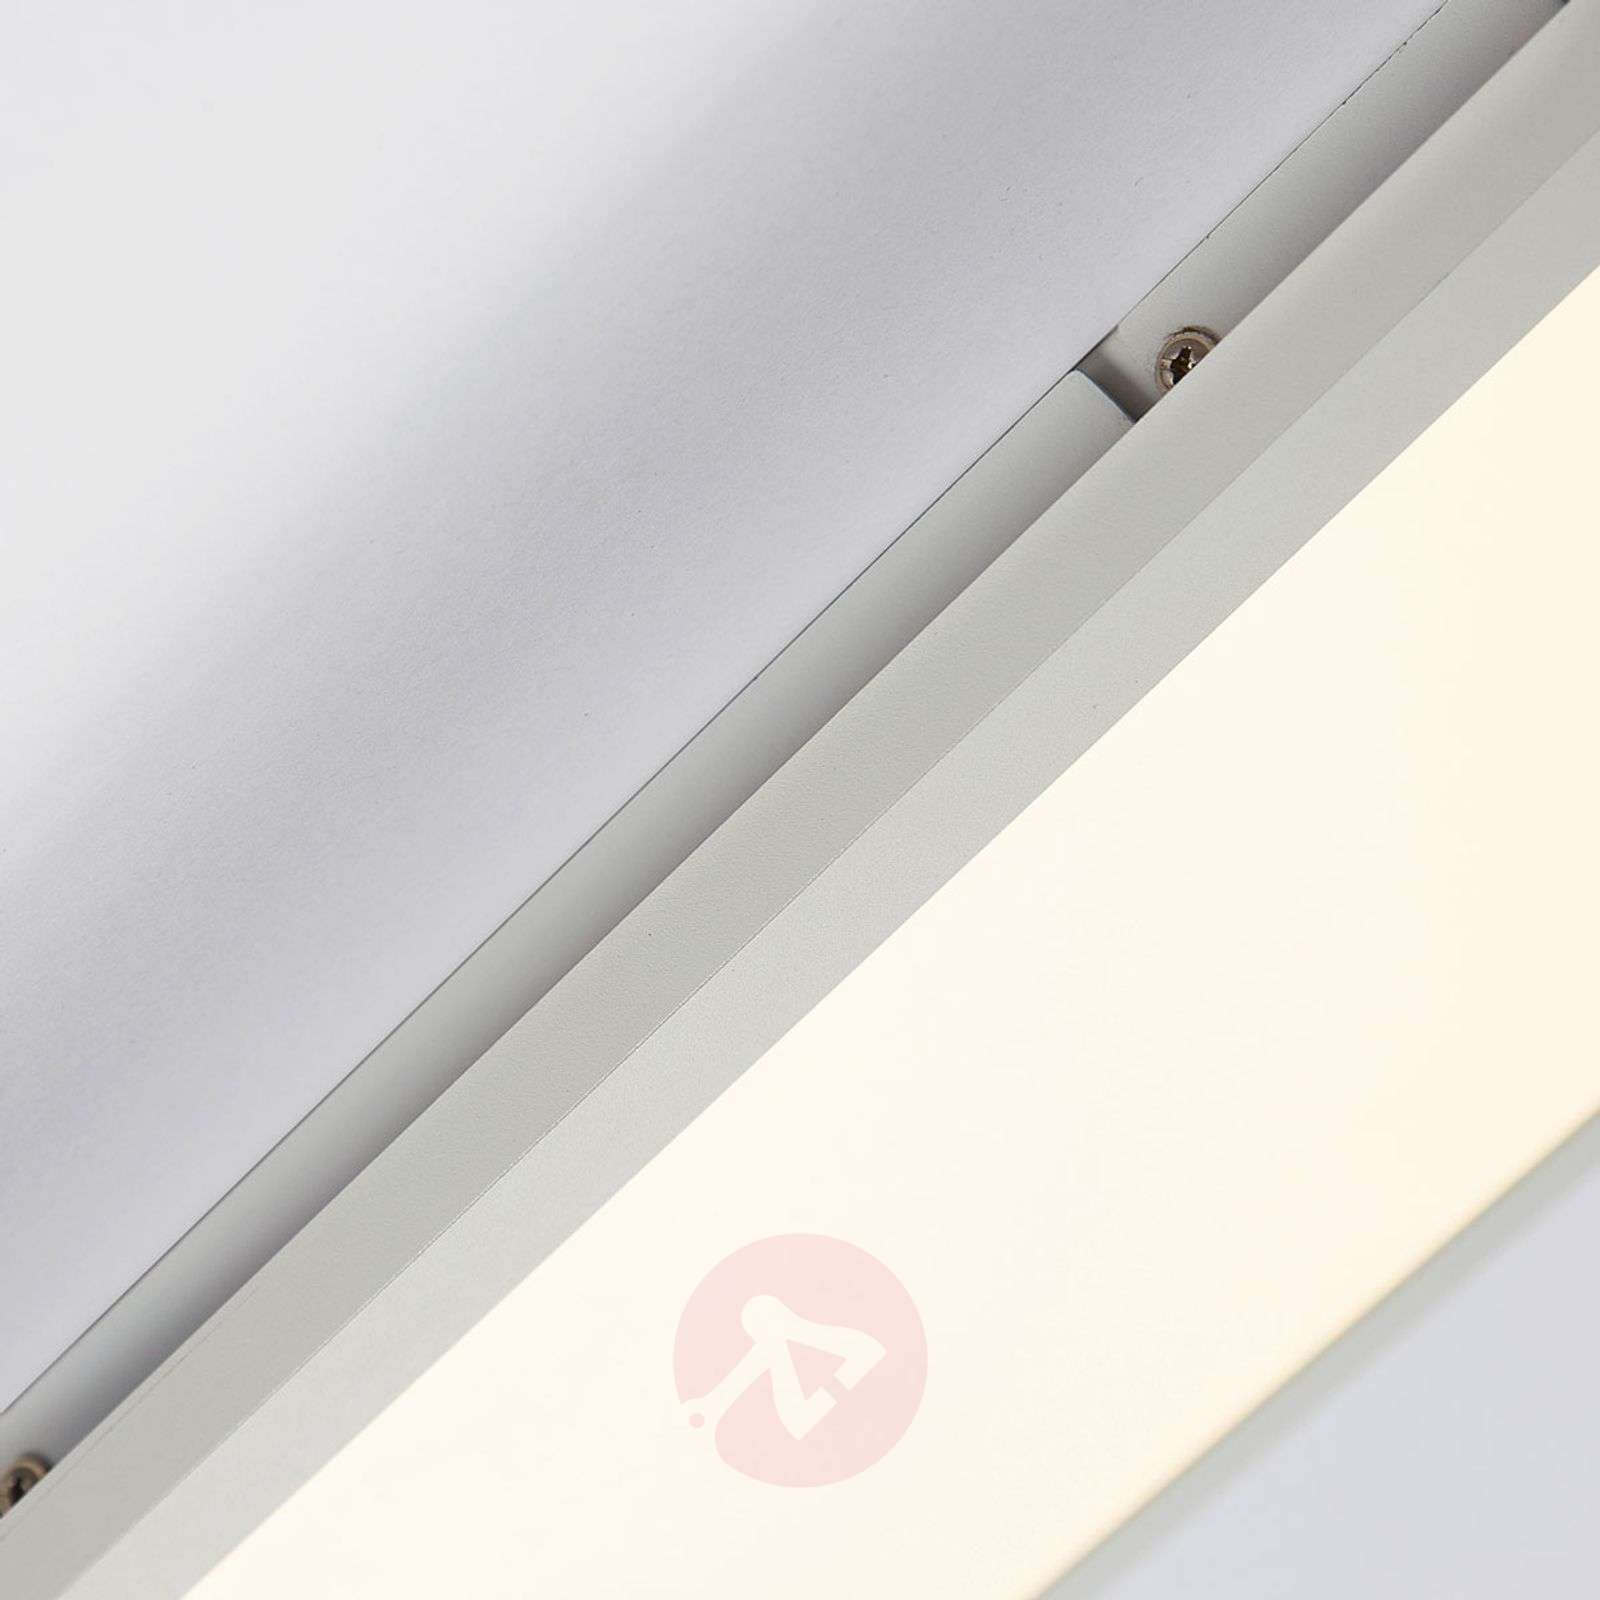 Elongated LED panel Enja, 30 x 80 cm-9621531-02